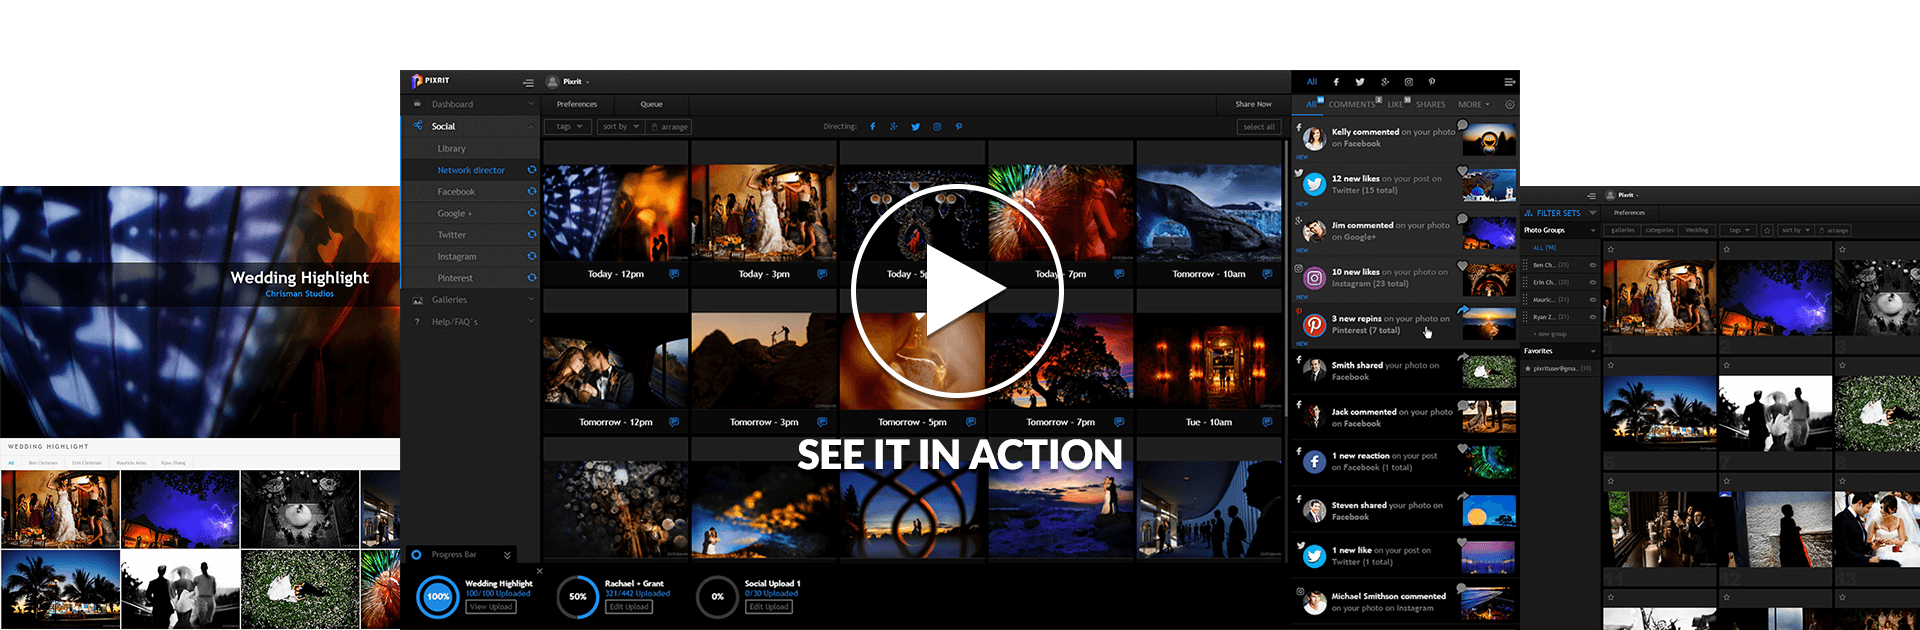 pixrit the ultimate social media manager and client gallery platform for photographers 1 week of sharing 30 seconds video